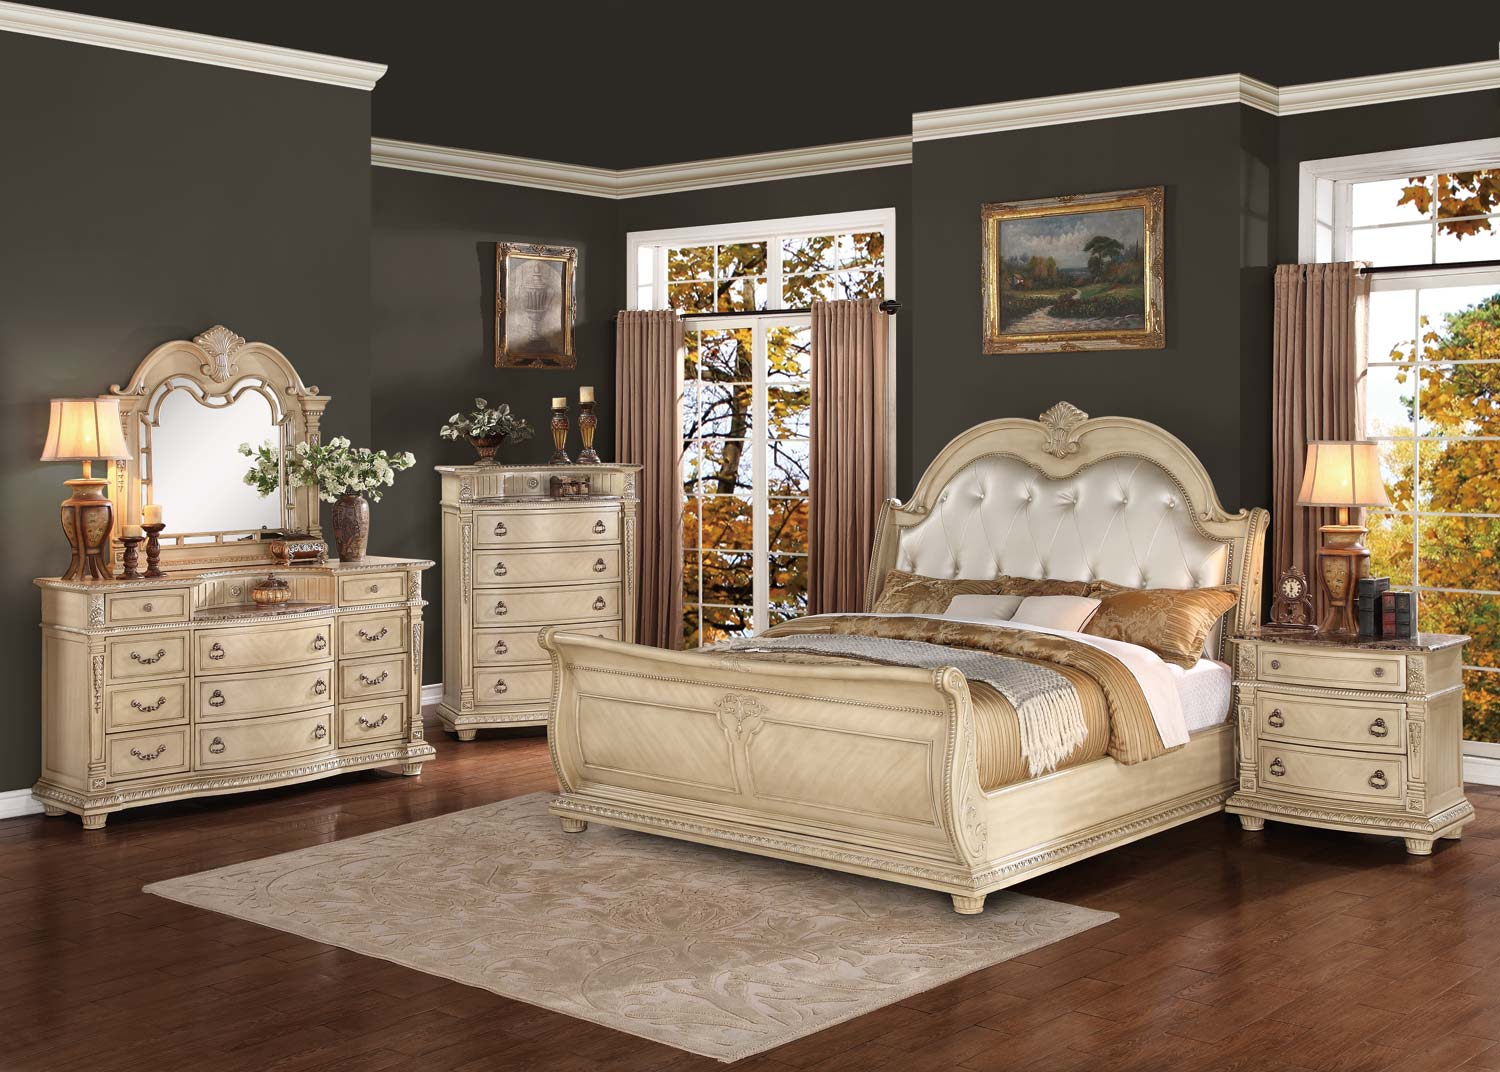 Homelegance Palace II Upholstered Bedroom Set - Antique White